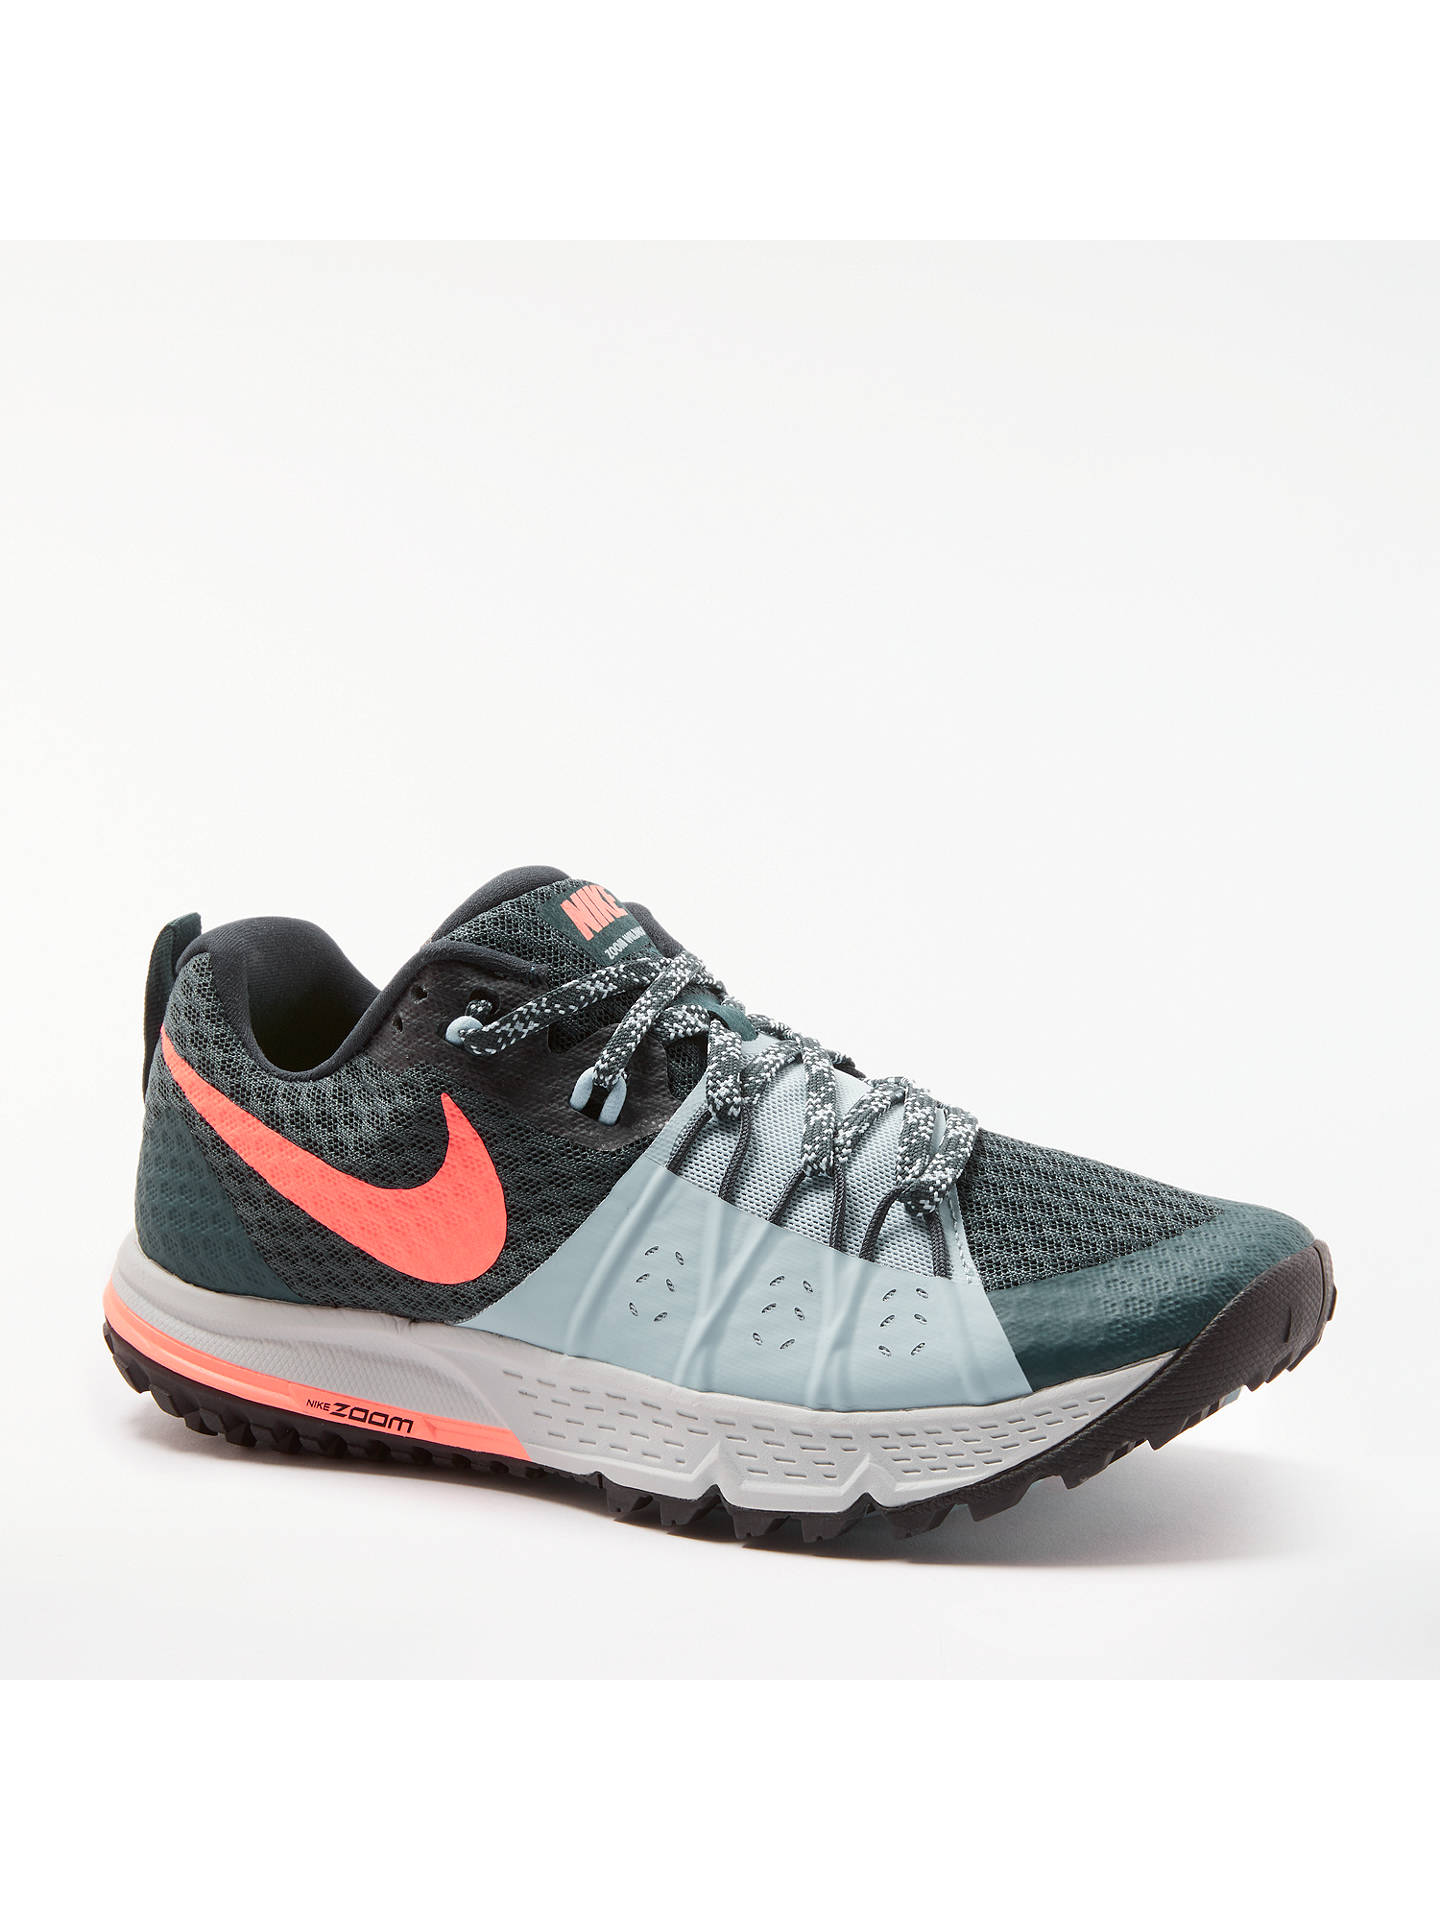 first rate 2efc5 6d47d ... Buy Nike Air Zoom Wildhorse 4 Women s Running Shoes, Black White Grey,  ...